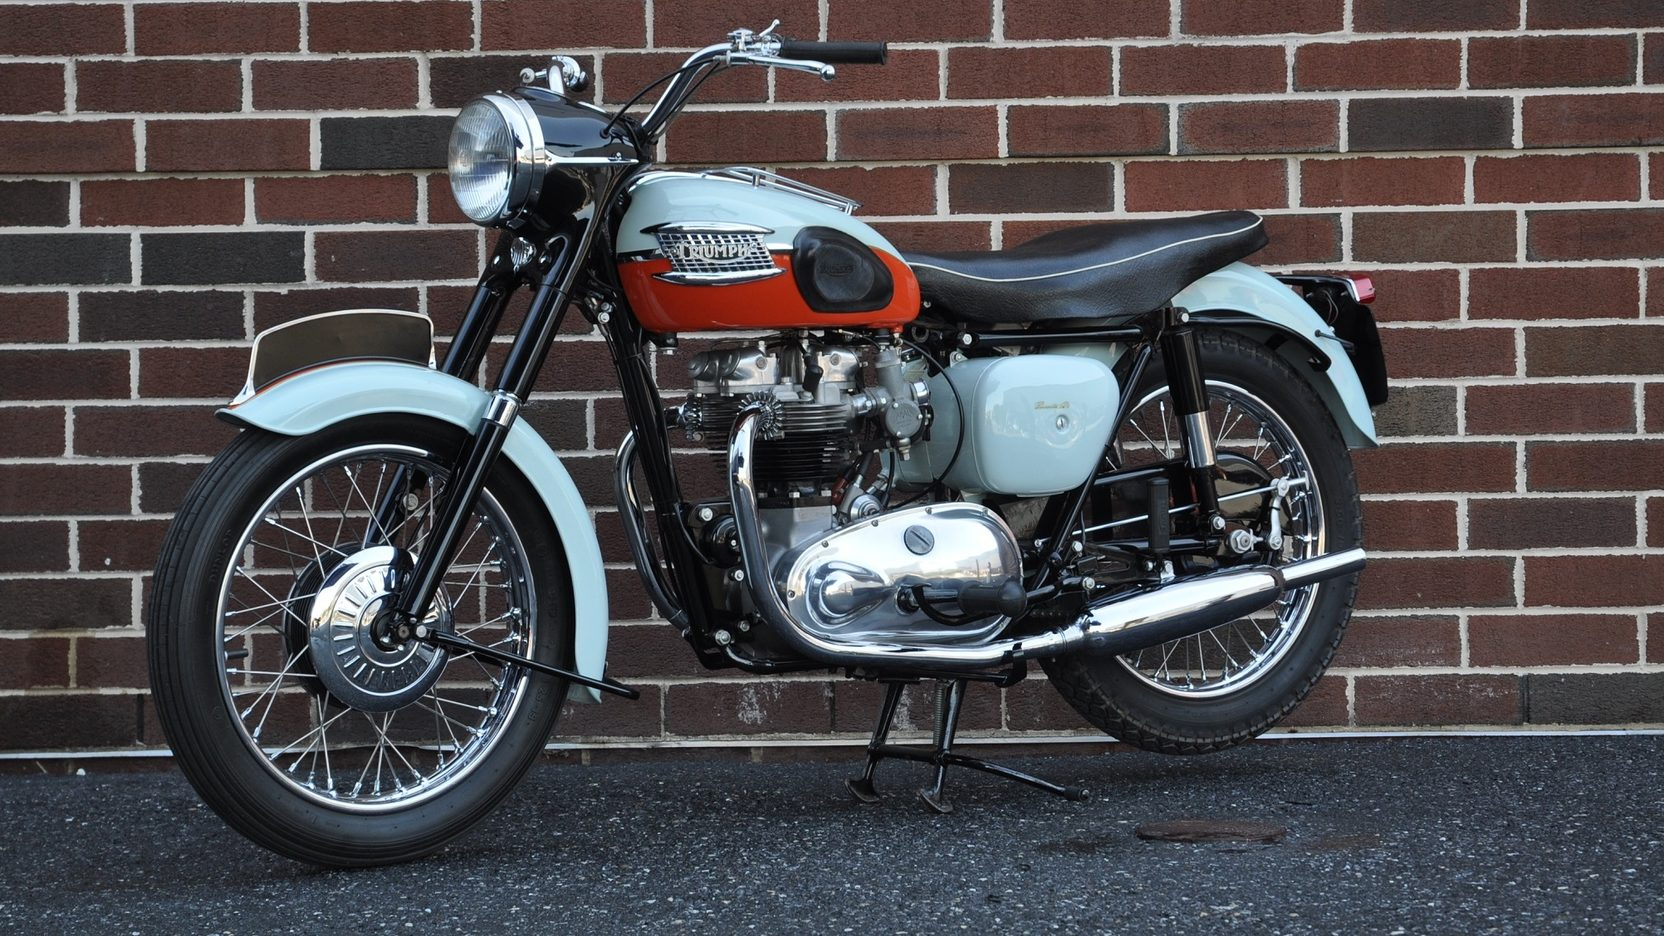 1959 Triumph Bonneville T120 Parked In Front Of A Brick Wall